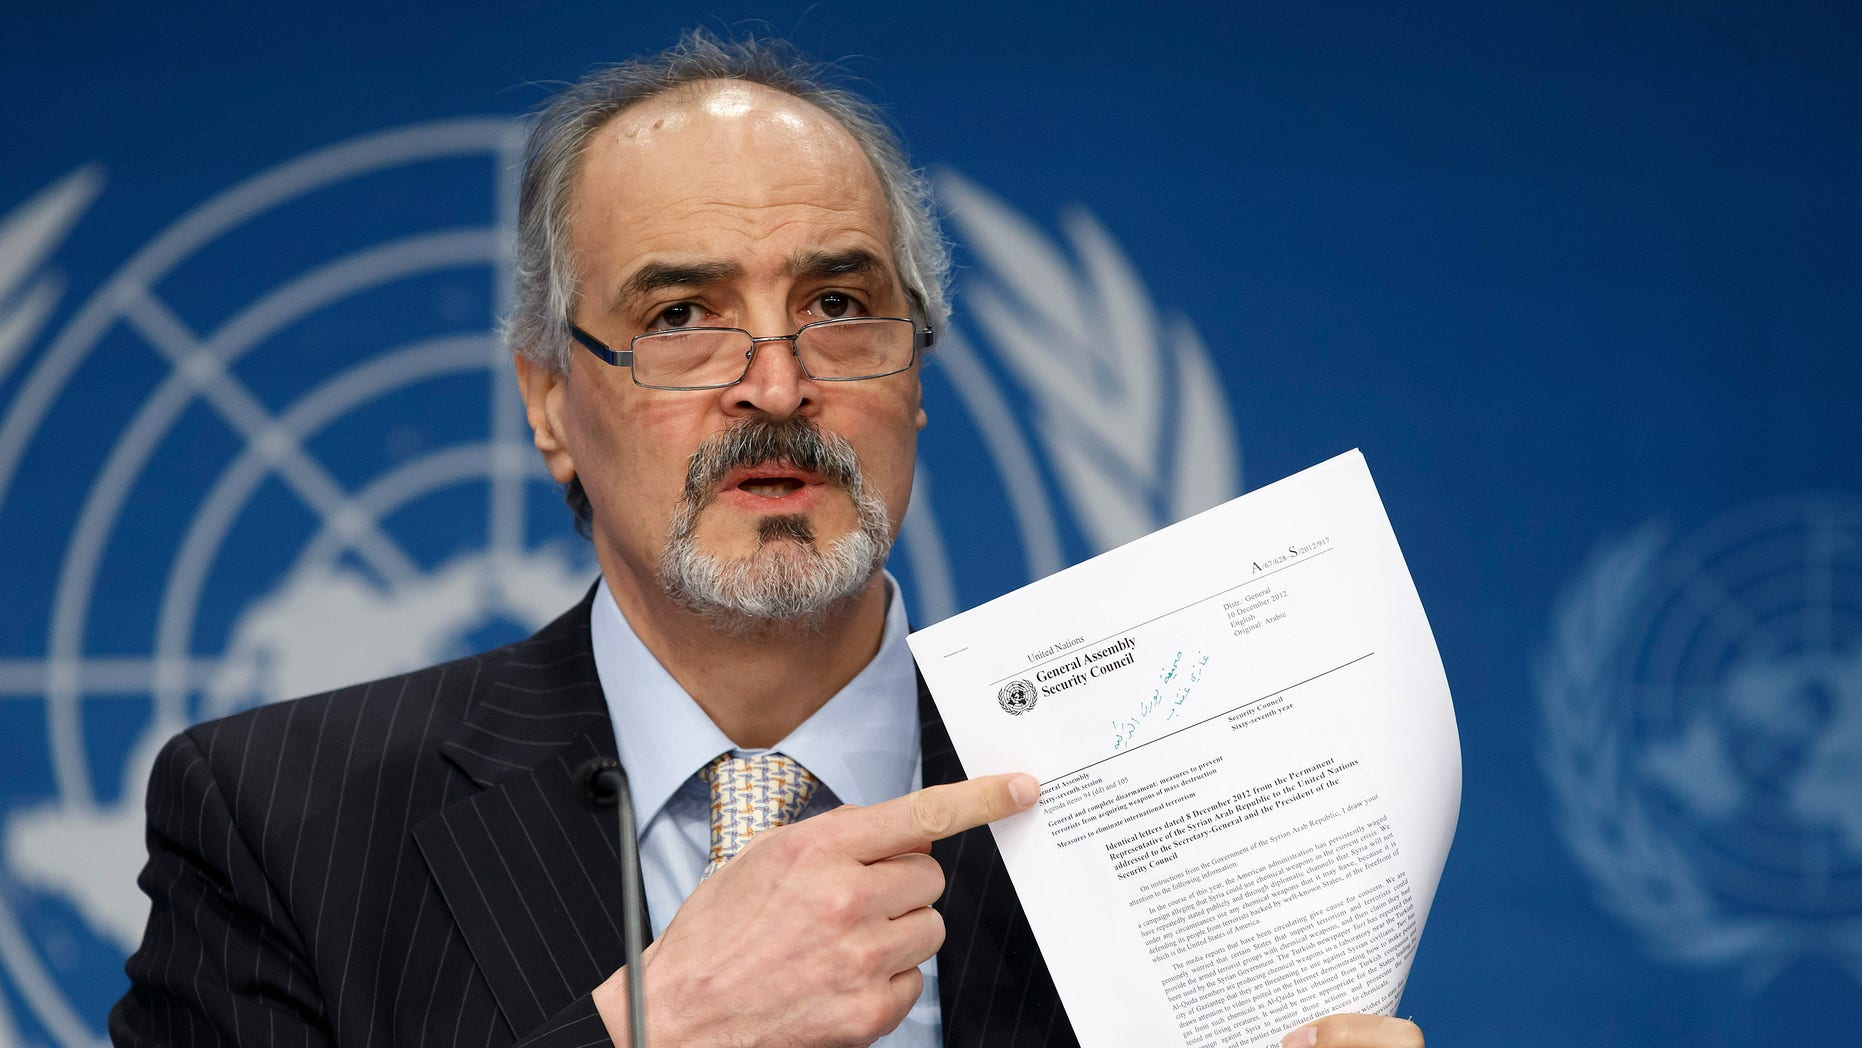 """Syrian Ambassador to the United Nations, Bashar Ja'afari, points to a document during a press conference during the Syrian peace talks in Montreux, Switzerland, Wednesday, Jan. 22, 2014. U.N. Secretary-General Ban Ki-moon opened the meeting saying that the peace talks will face """"formidable"""" challenges for Syria. Ban called on the Syrian government and the opposition trying to overthrow it to negotiate in good faith.(AP Photo/KEYSTONE/Salvatore Di Nolfi)"""